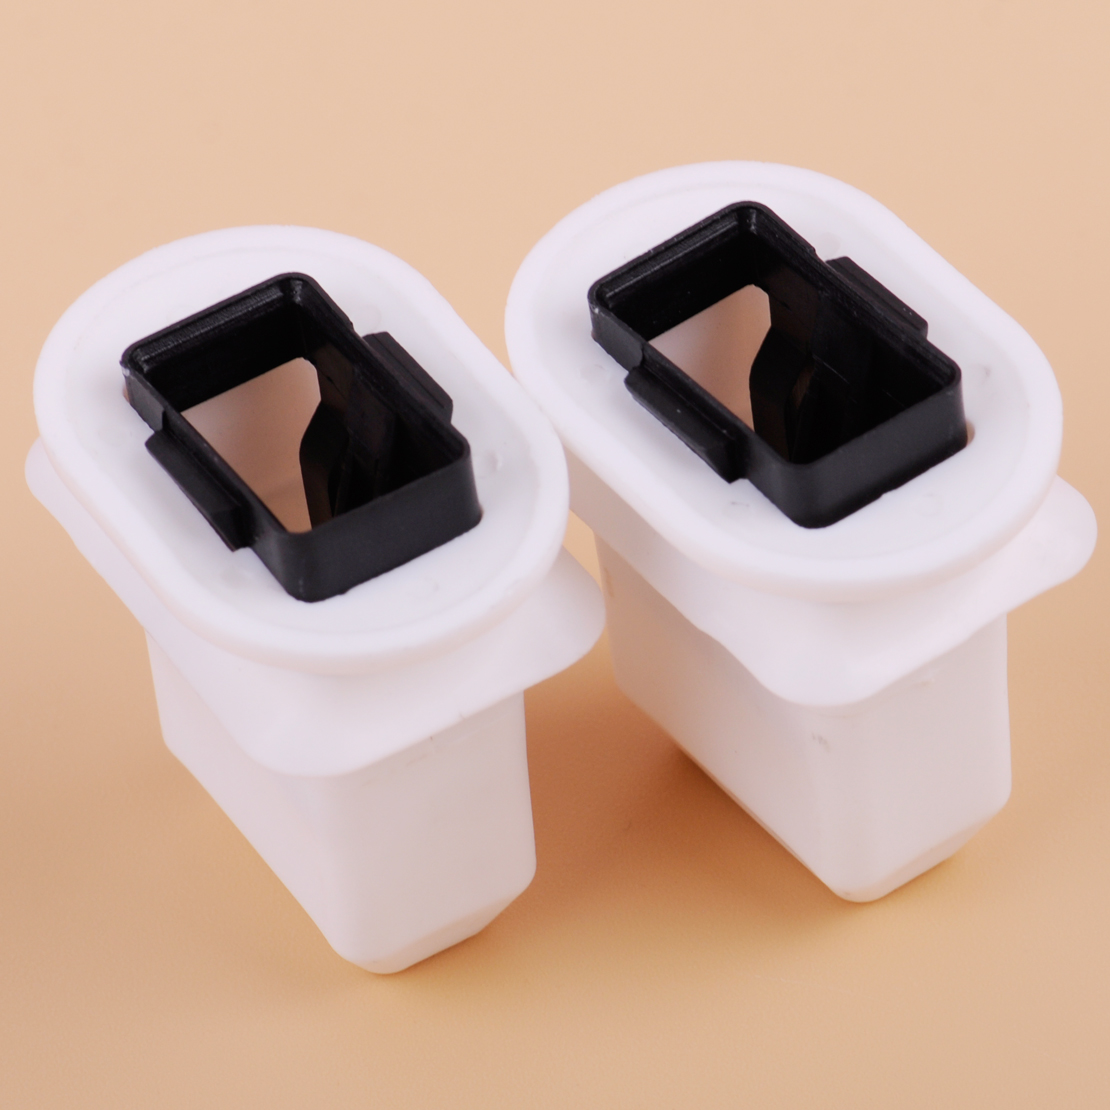 CITALL New 2Pcs Rear Row Seat Cushion Frame Grommet 4L0886373Fit for Audi Q7 A4 A6 Quattro S4 S6 2008 2009 2010 2011-2015